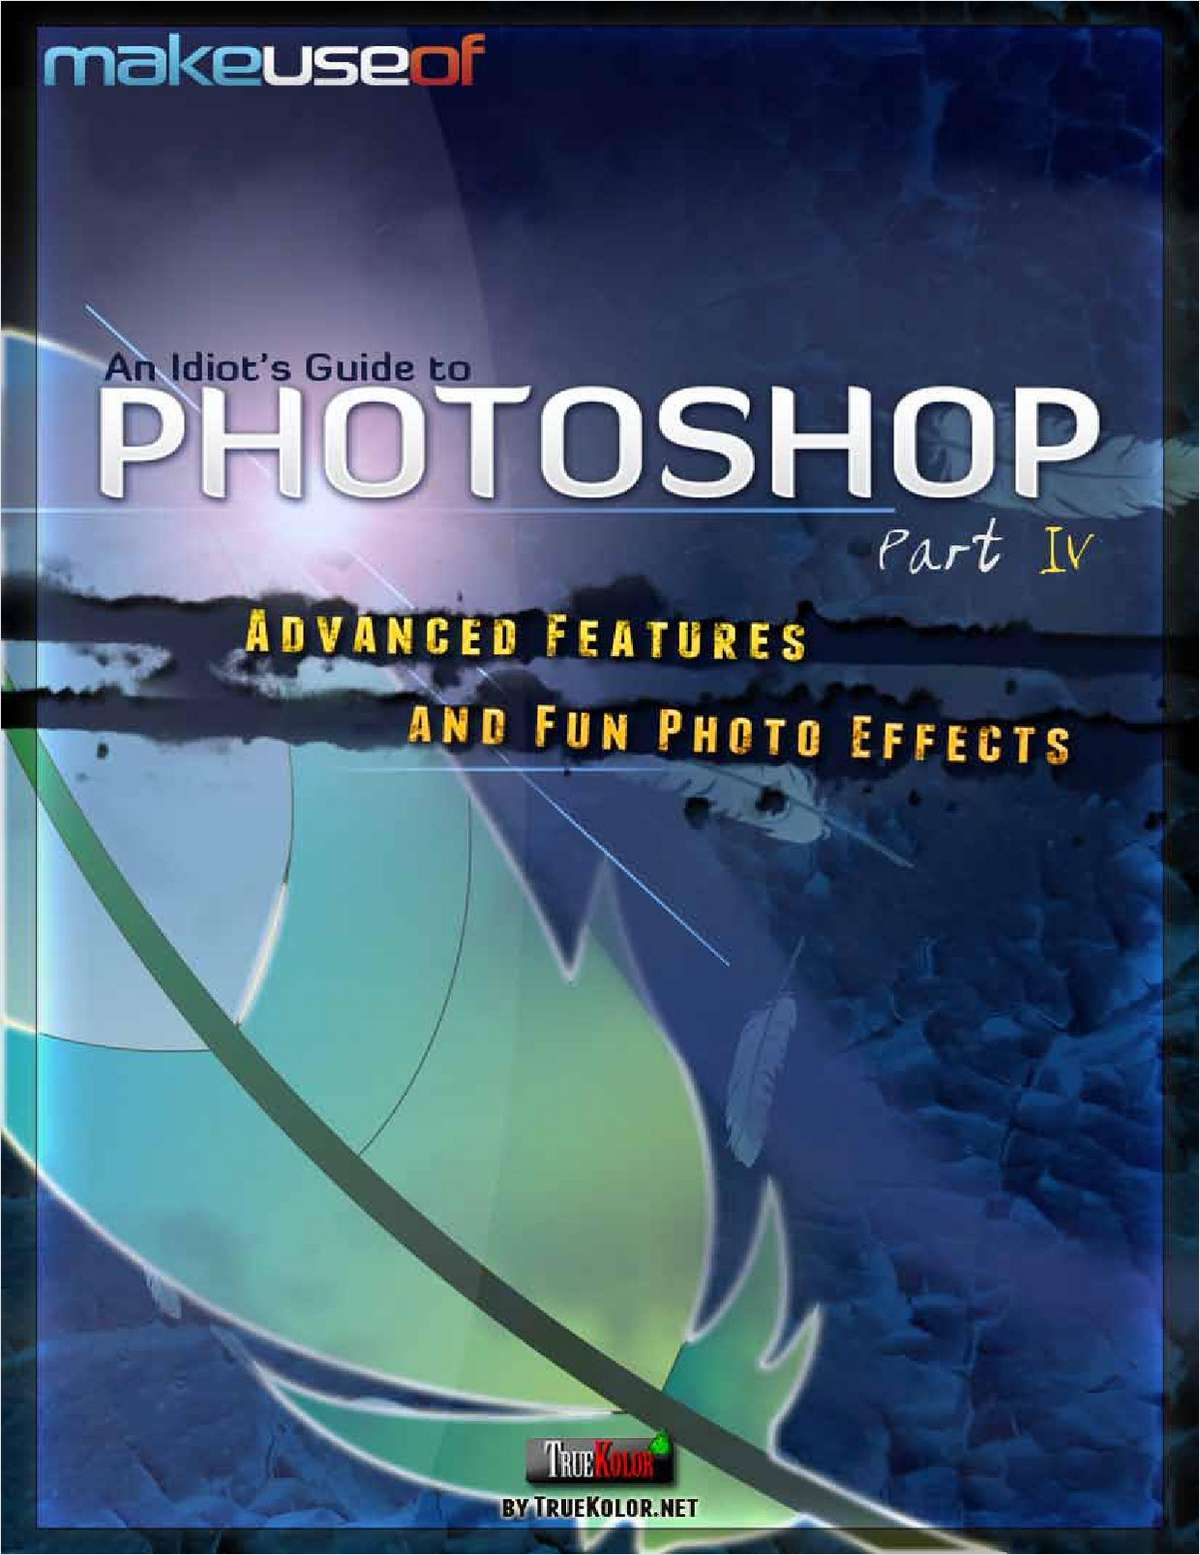 An Idiot's Guide to Photoshop: Part IV